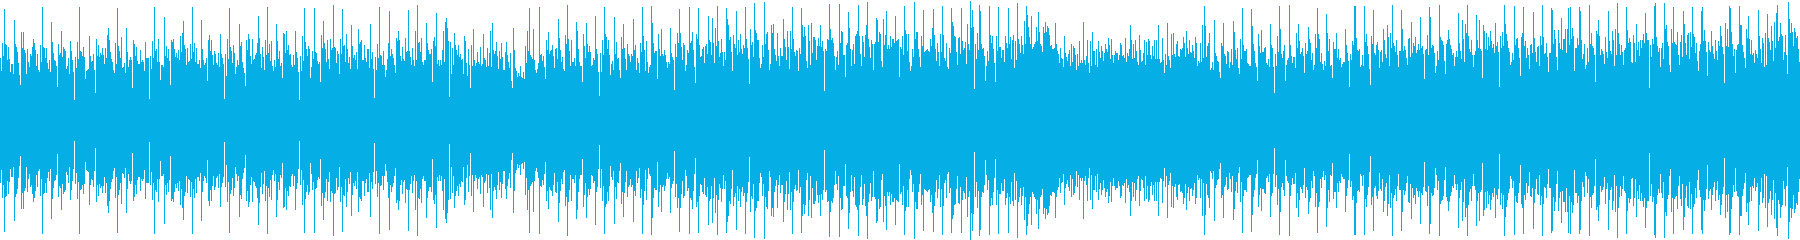 Refreshing, transparent, beginning, acoustic guitar AD22's reproduced waveform